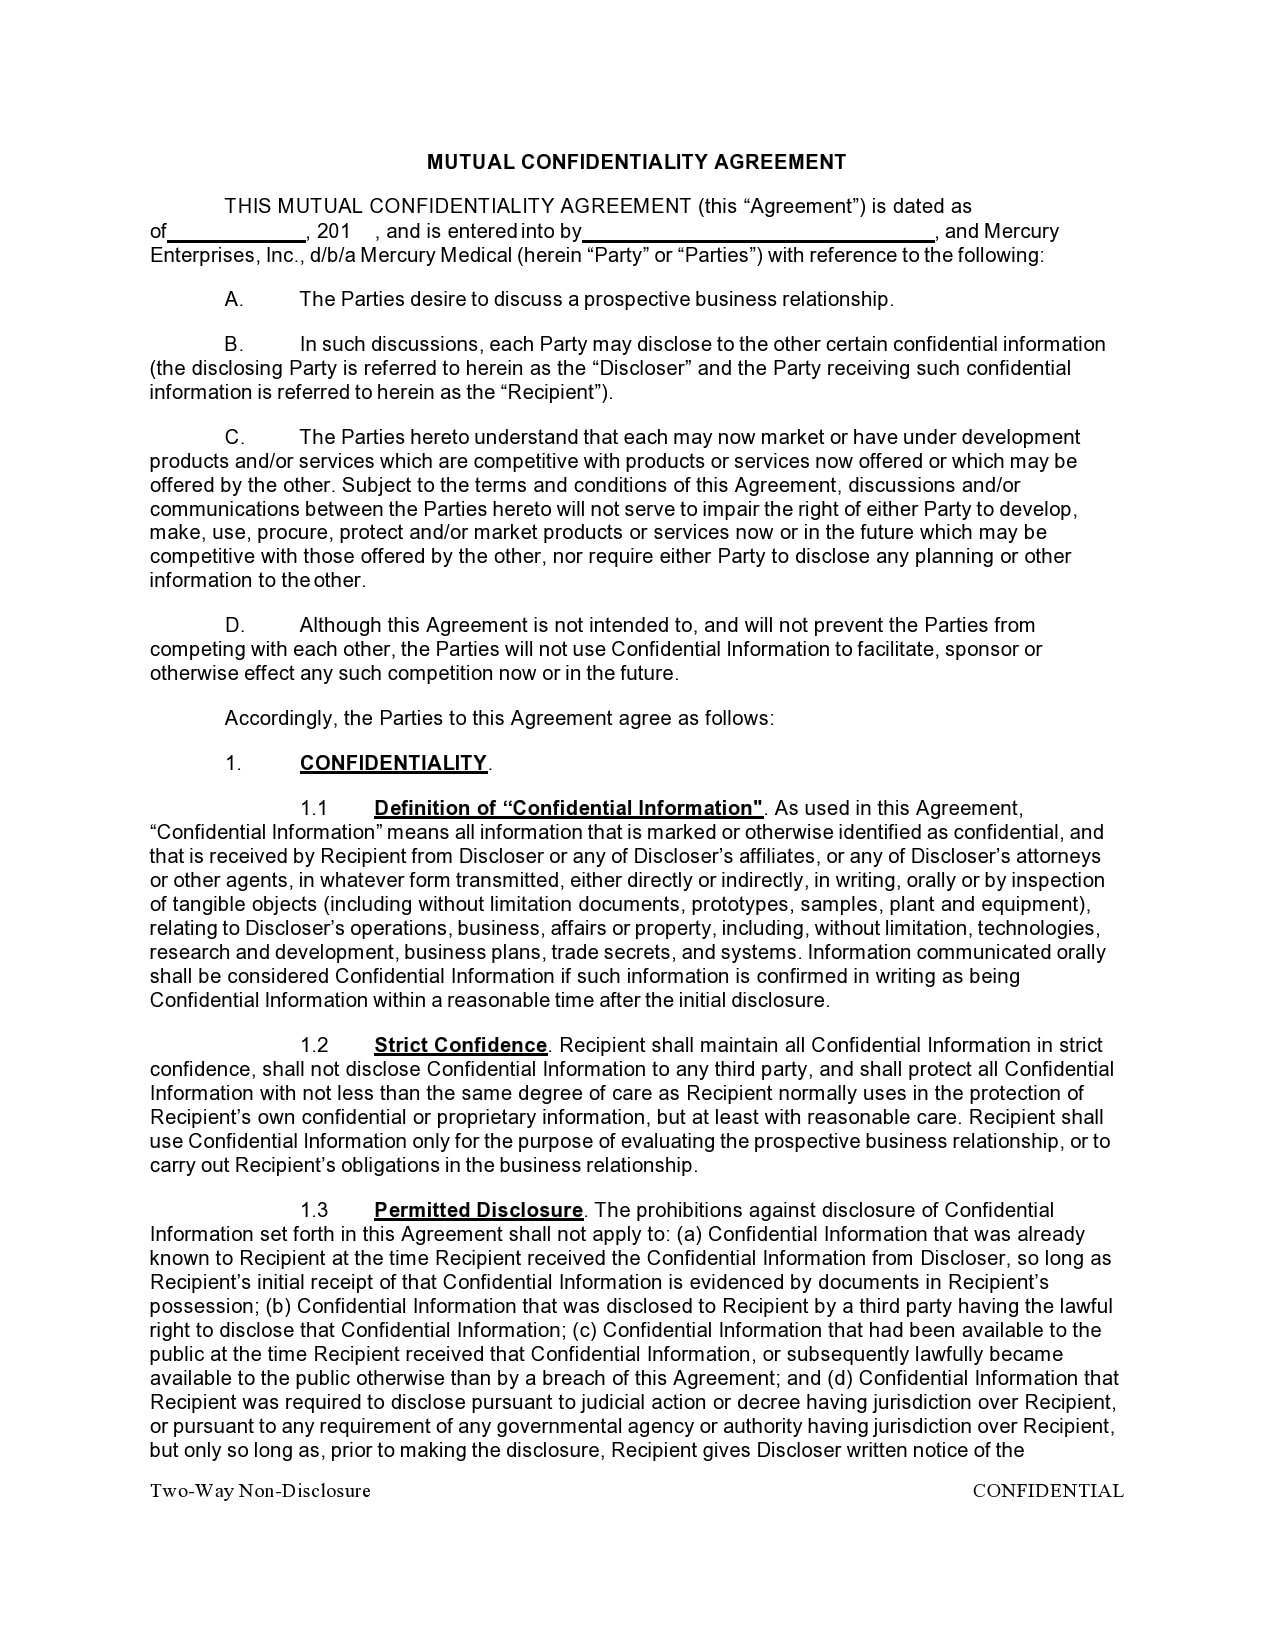 confidentiality agreement template 37